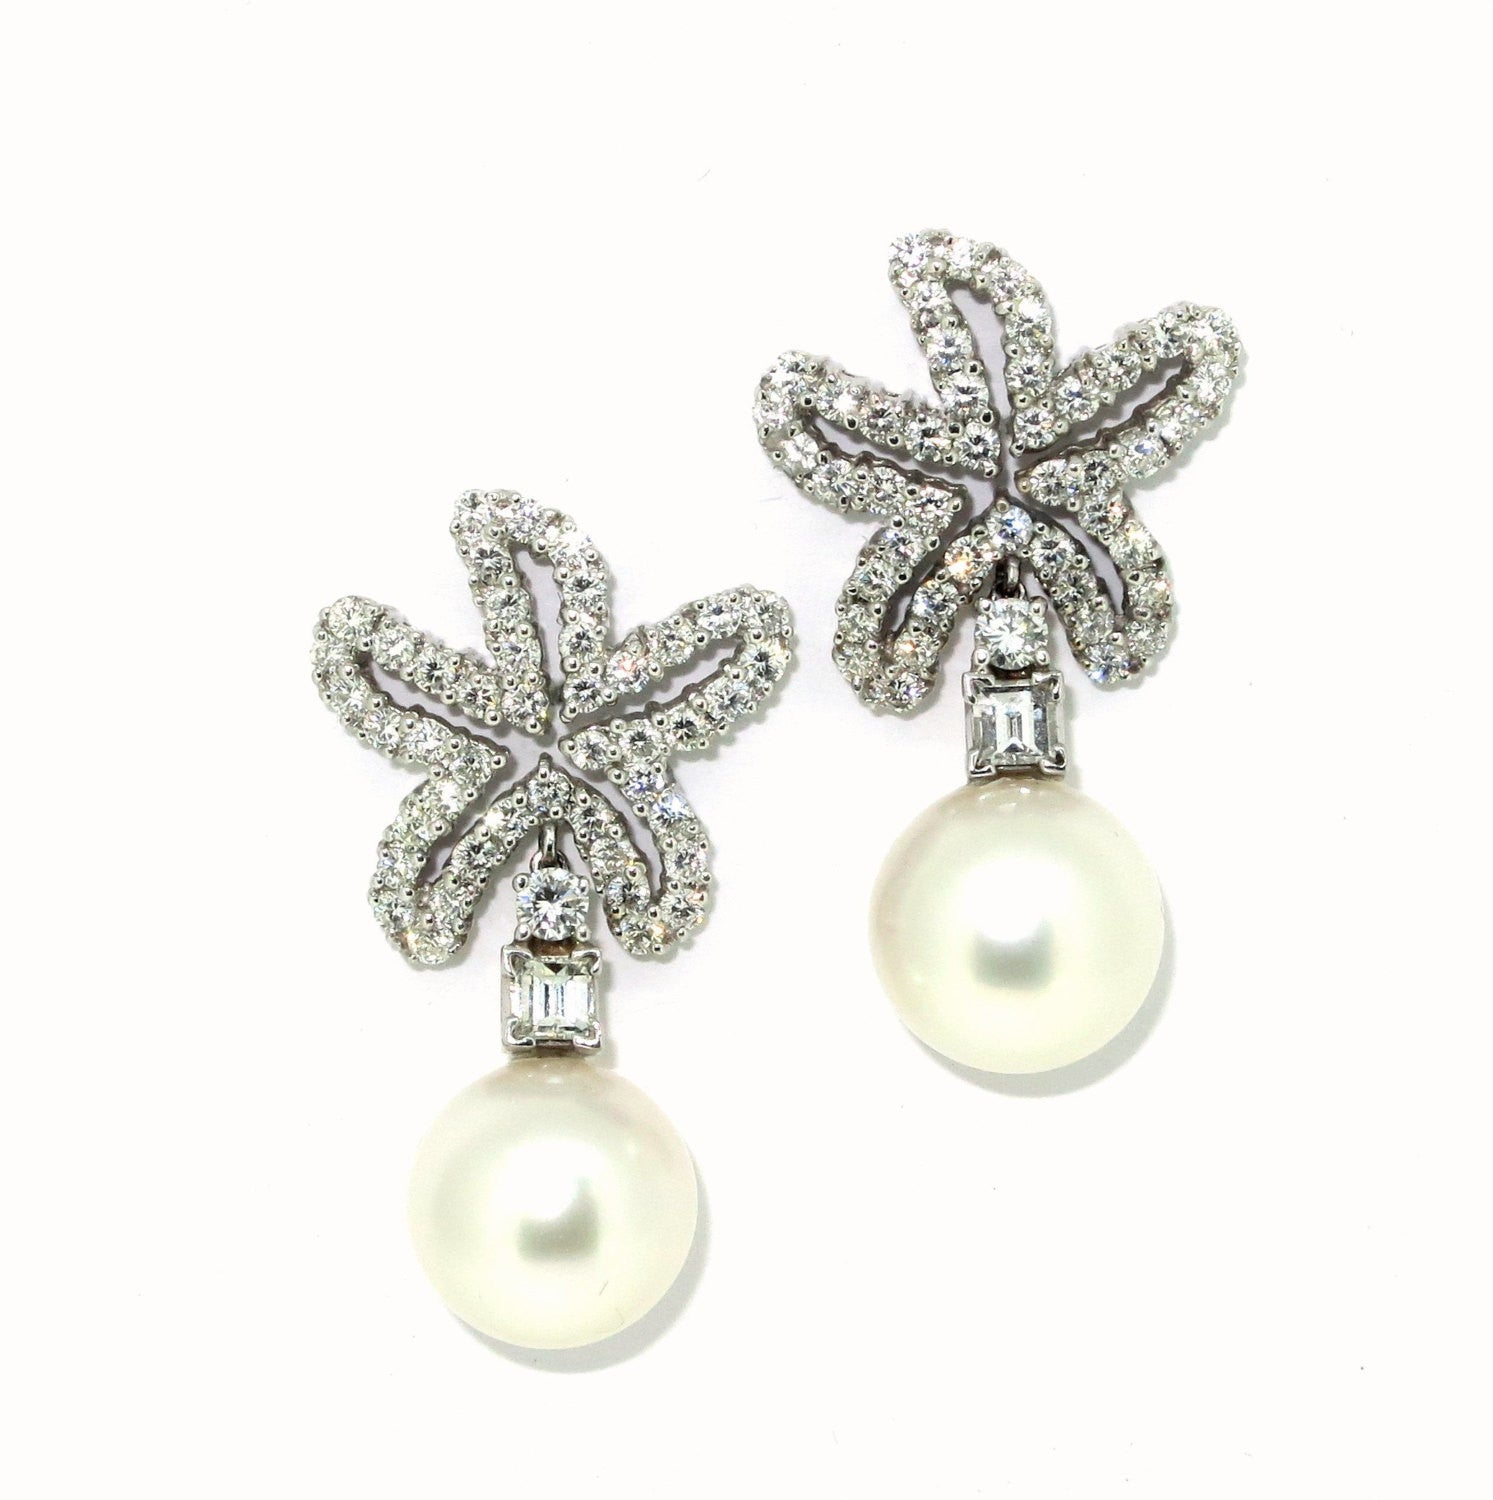 South Sea Pearls & Diamonds Earrings